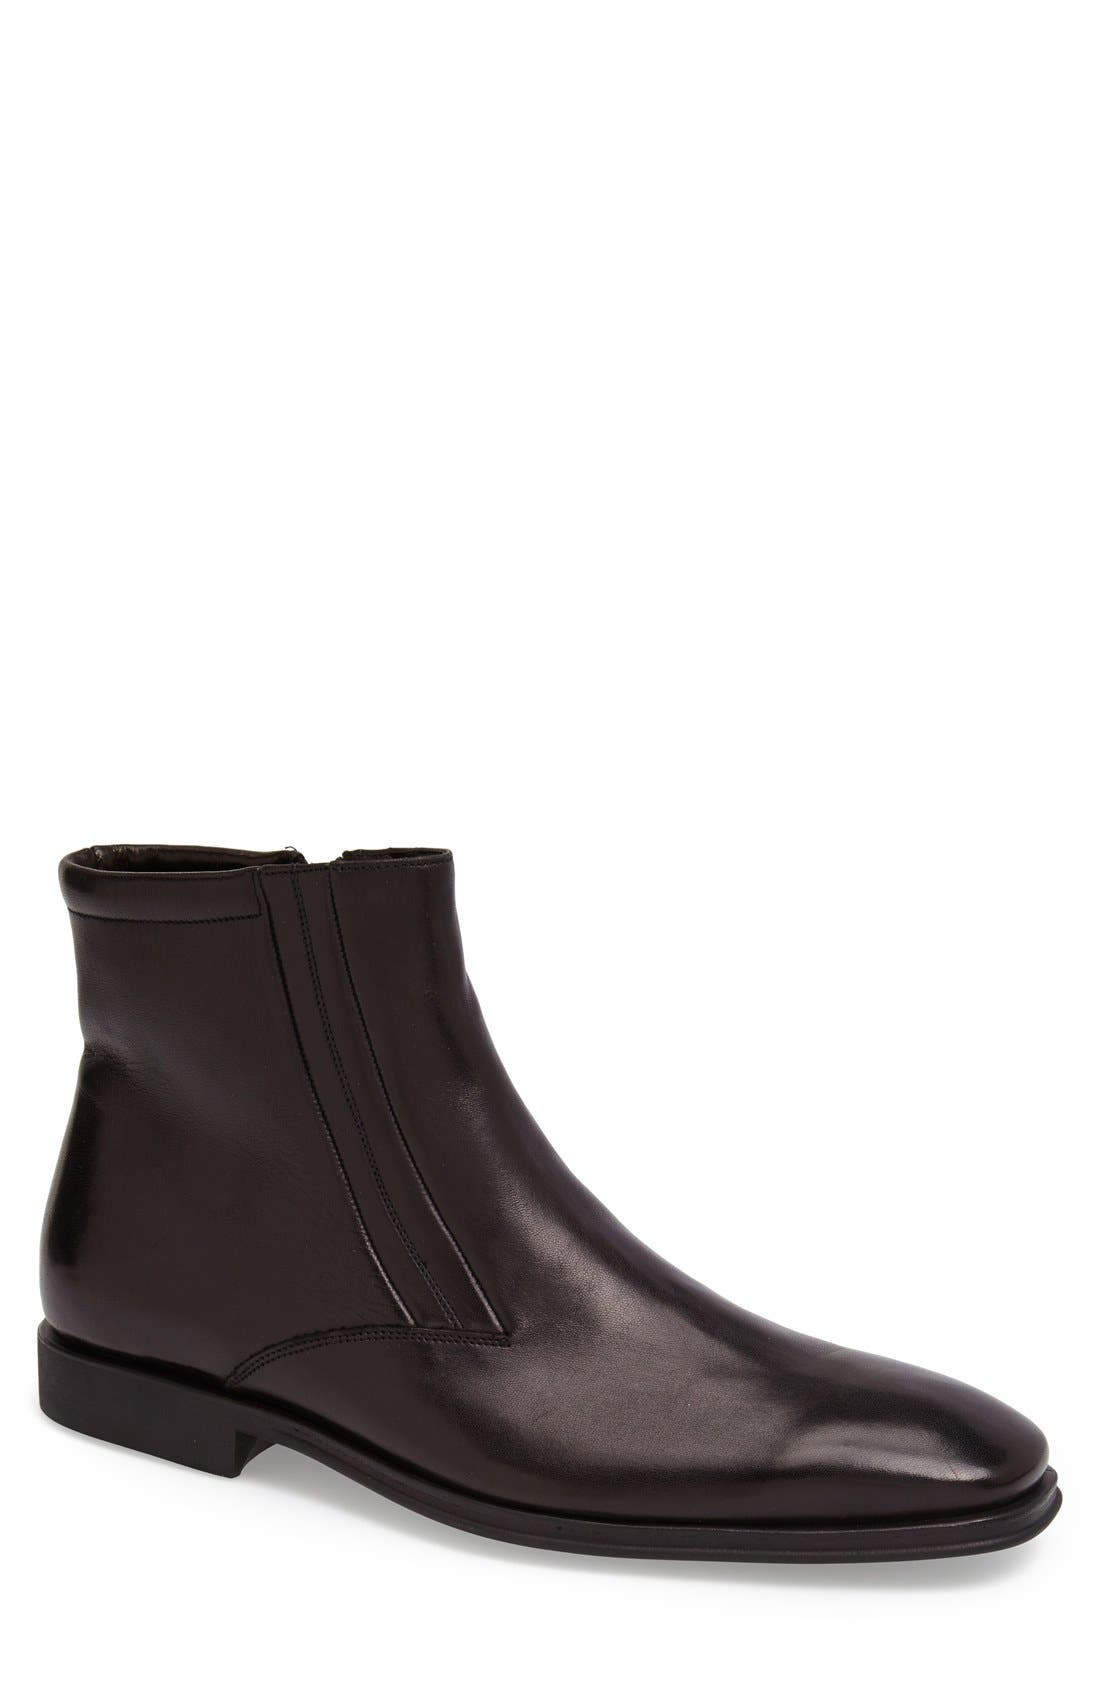 Alternate Image 1 Selected - Bruno Magli 'Raspino' Boot (Men) (Online Only)